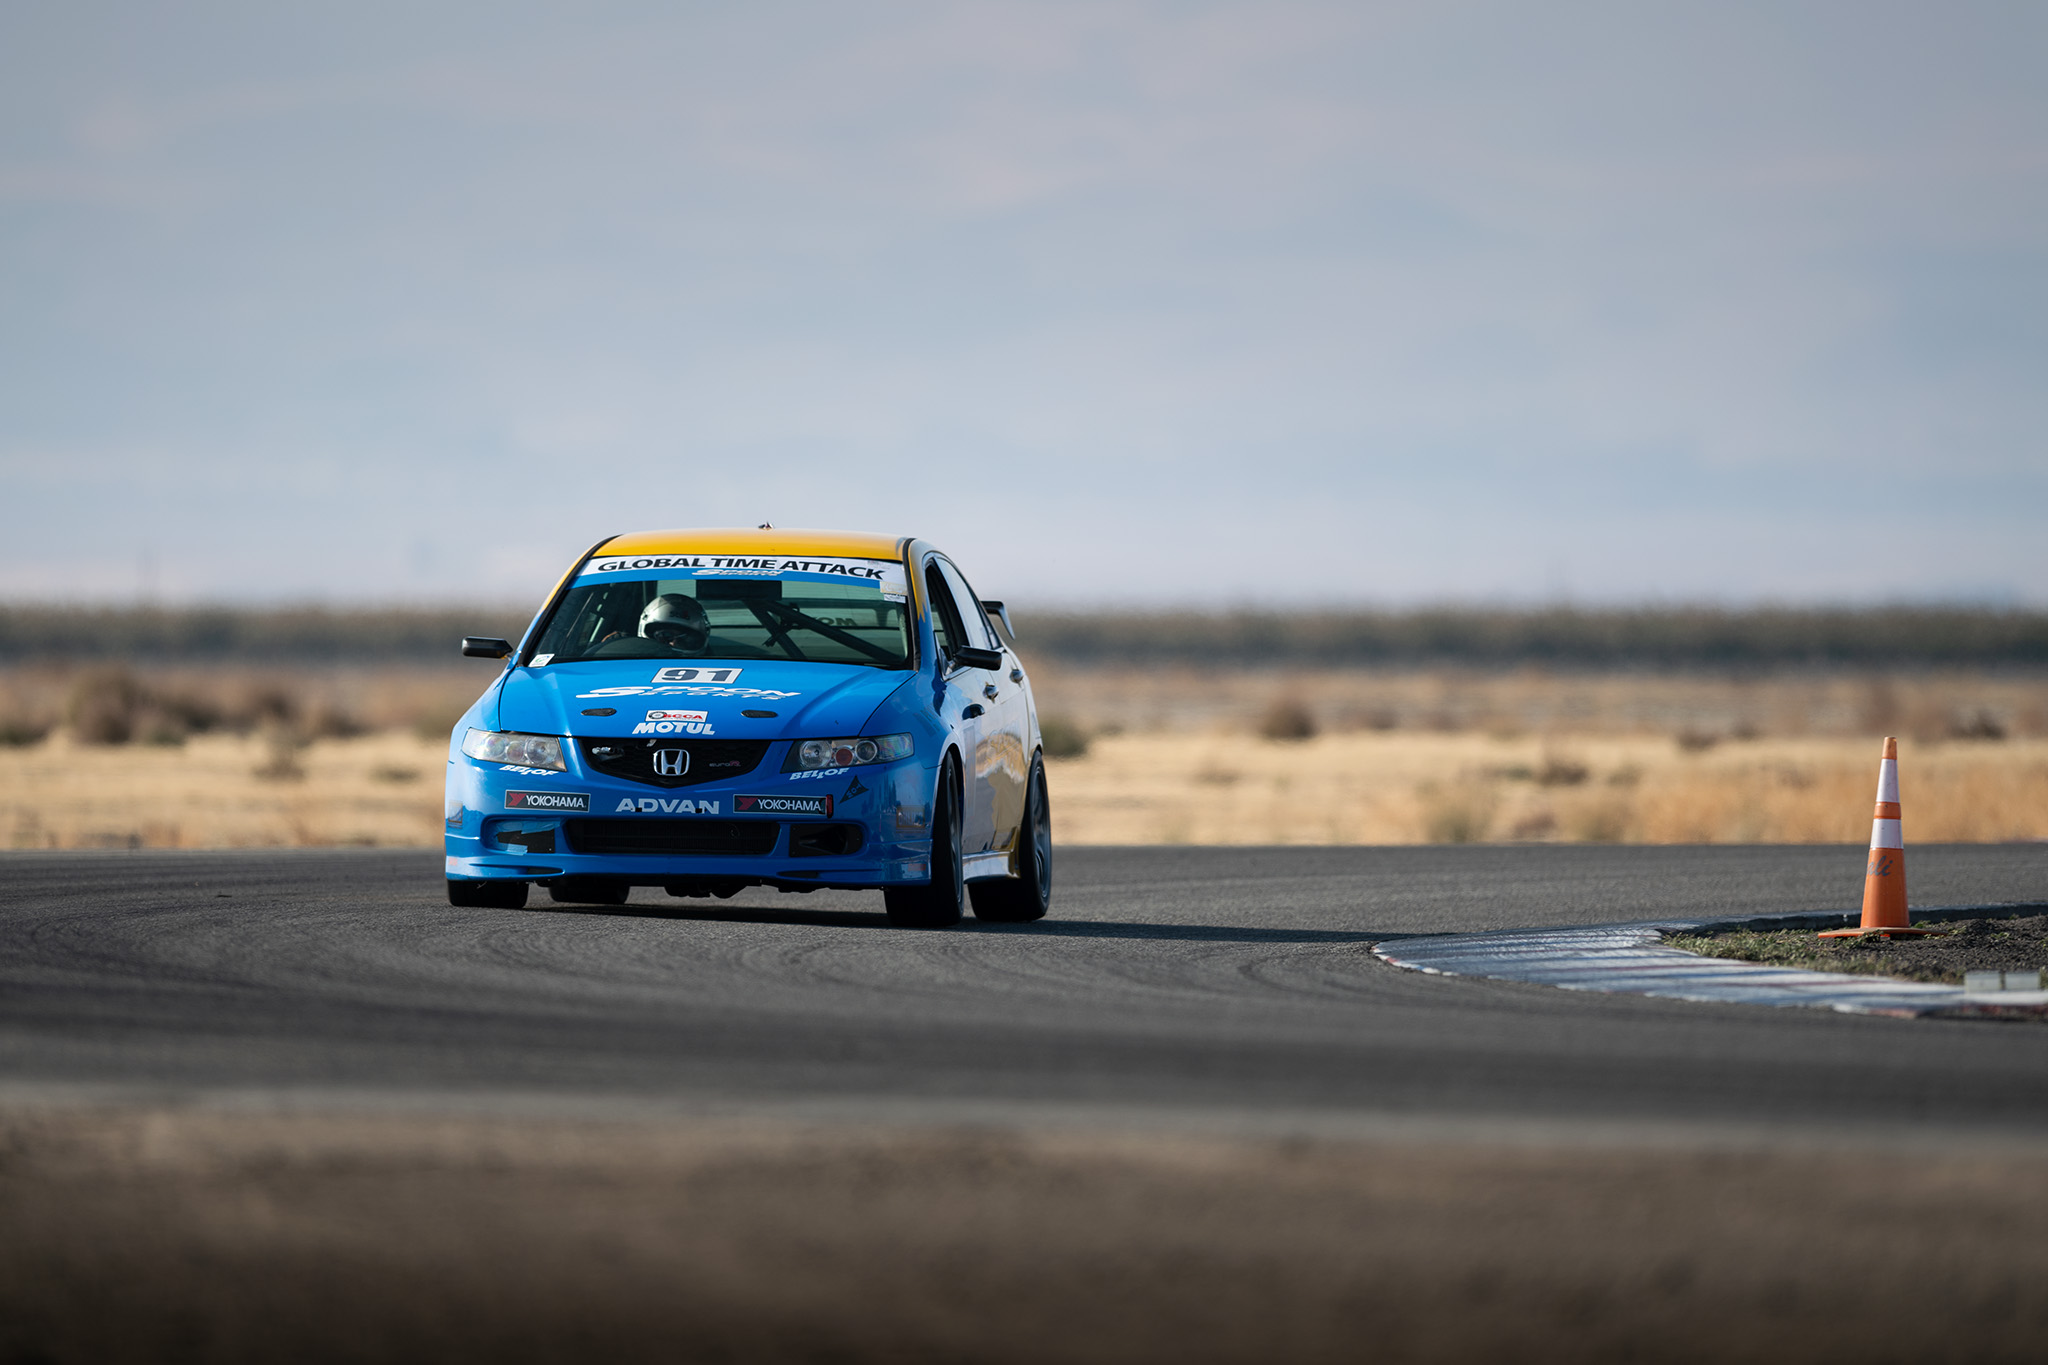 Therese Lahlouh behind the wheel of Nick Bright's Spoon Honda Accord Euro R at Global Time Attack finals motorsports photography by Luke Munnell